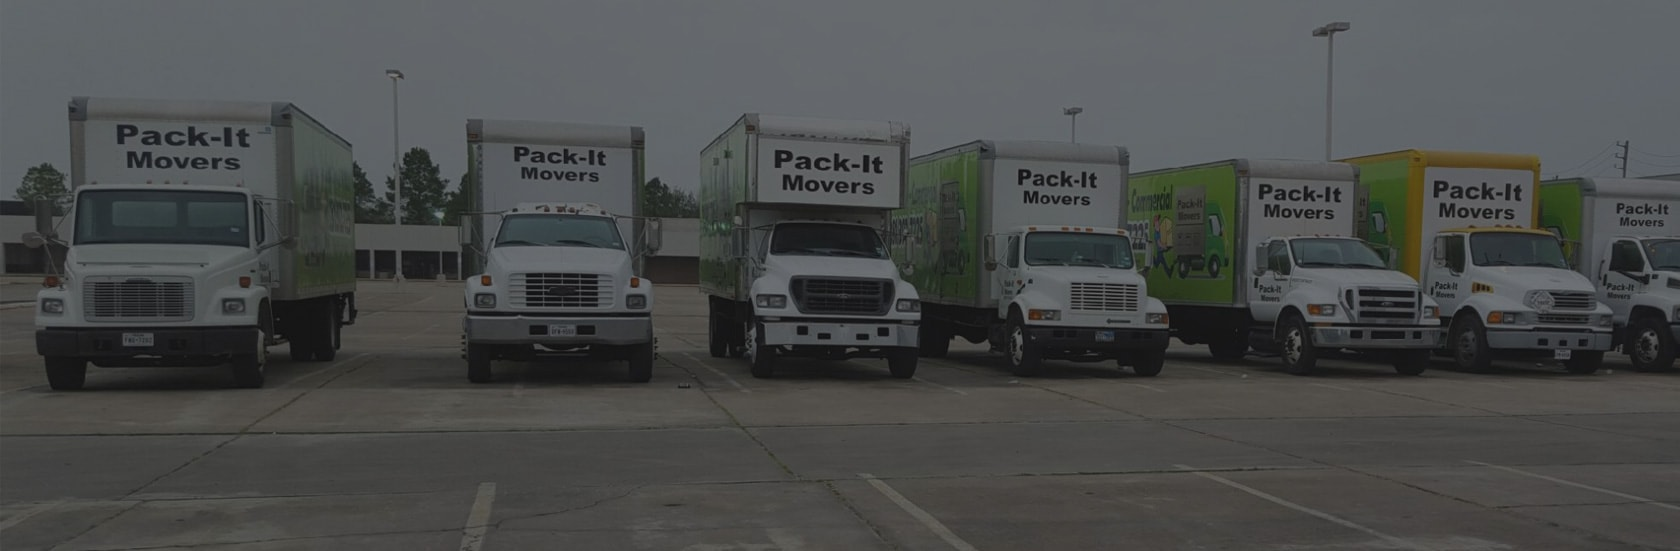 franchise moving company Katy, Texas